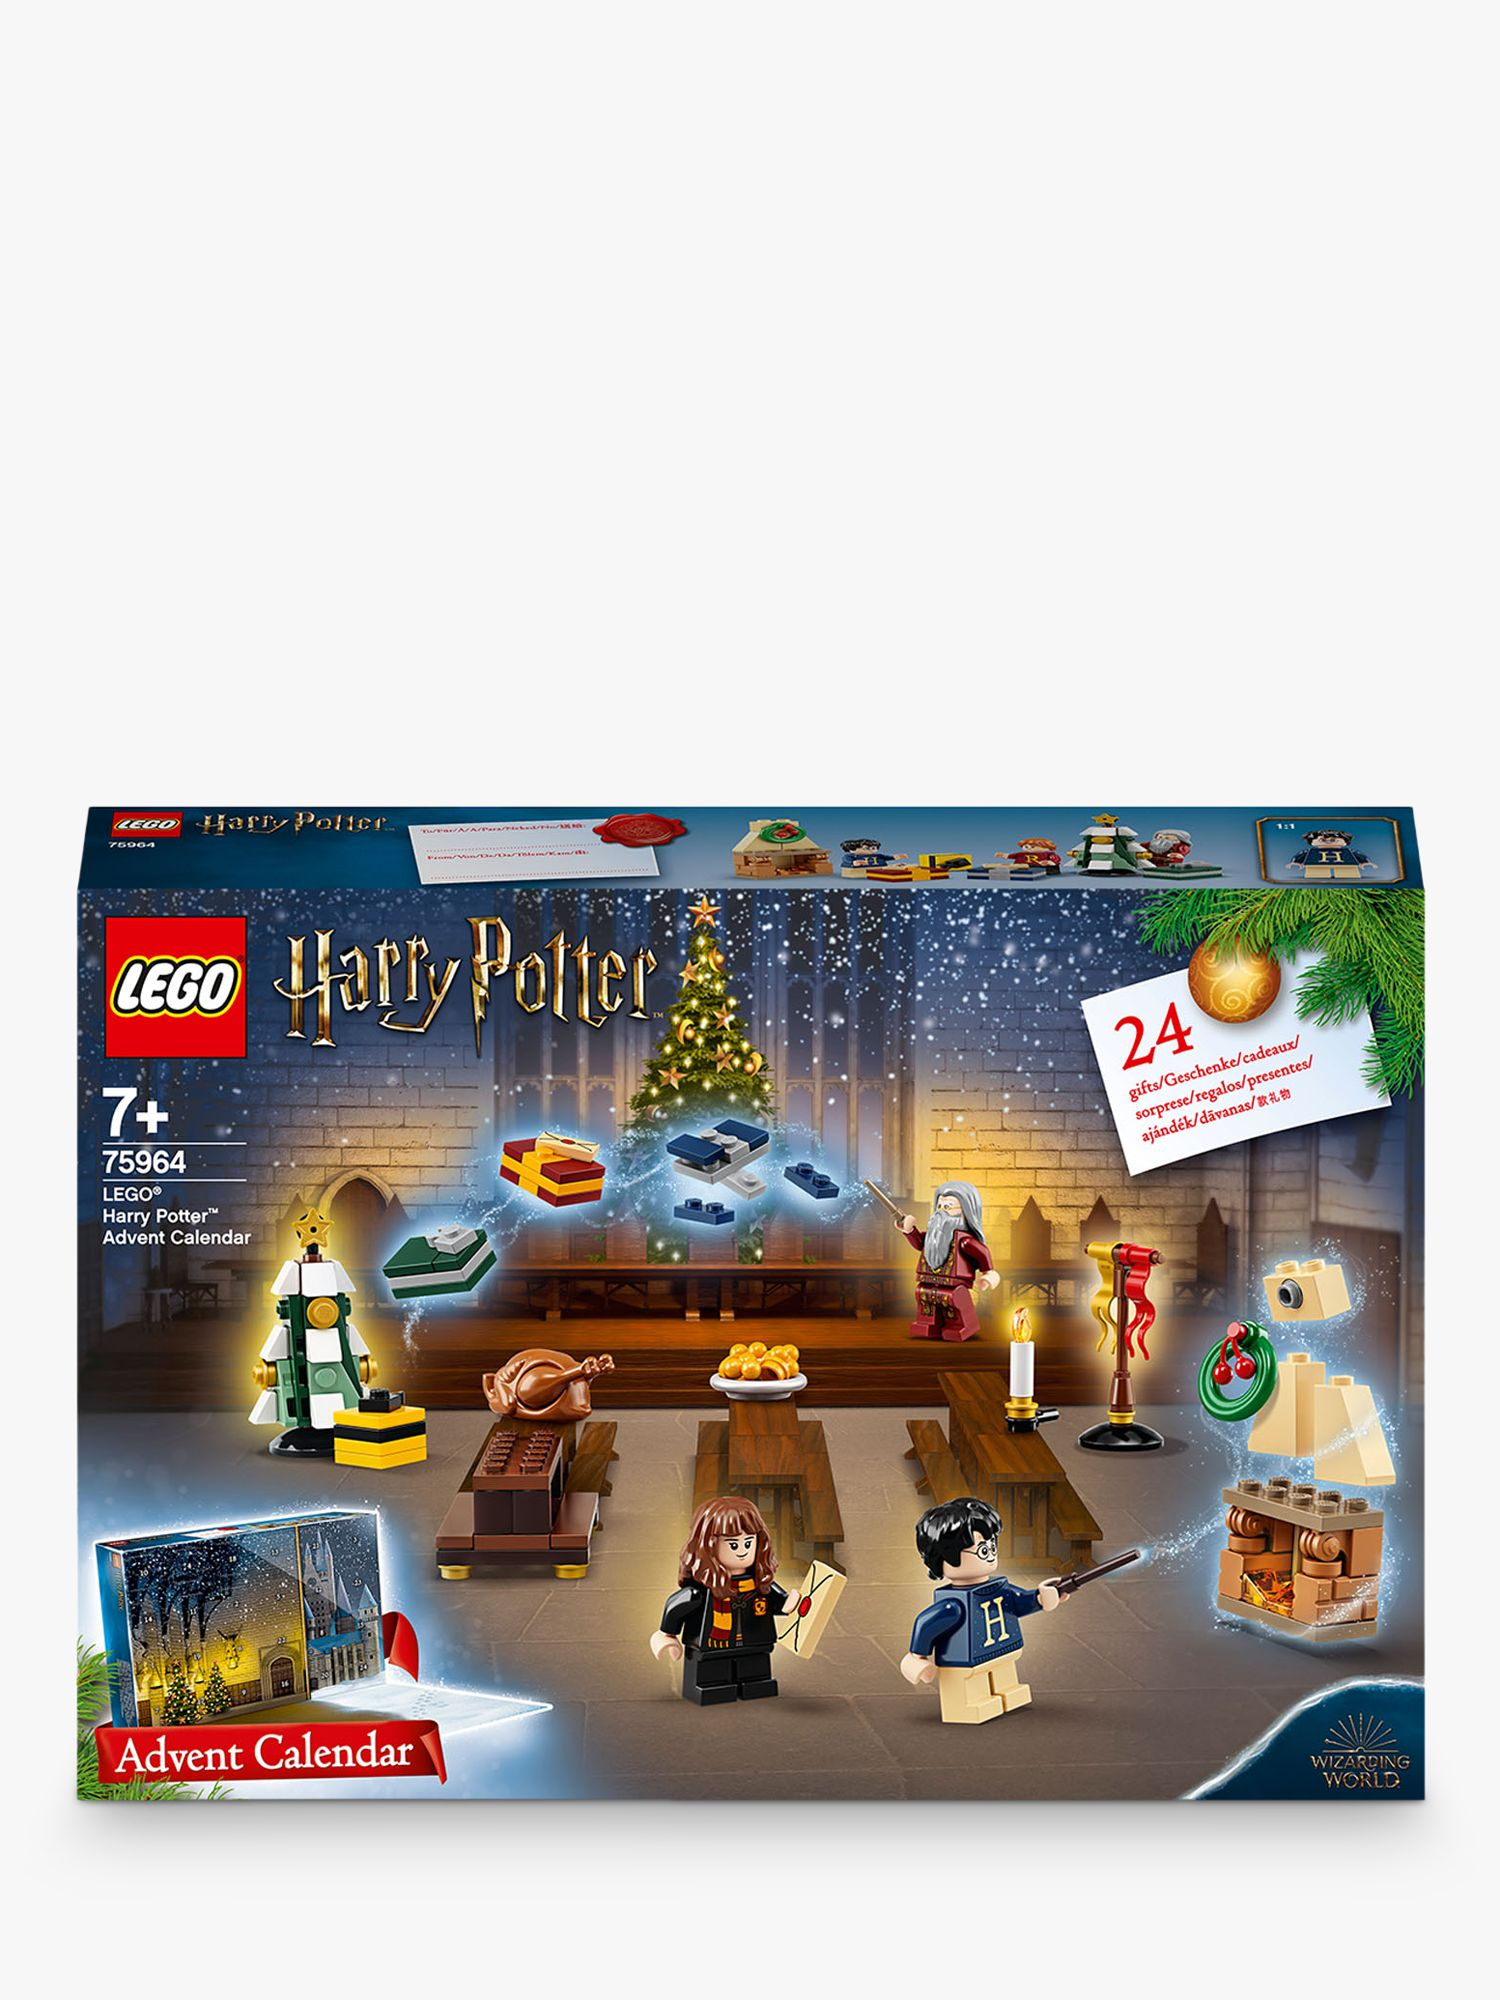 LEGO Harry Potter 75964 Advent Calendar 2019 with Minifigures